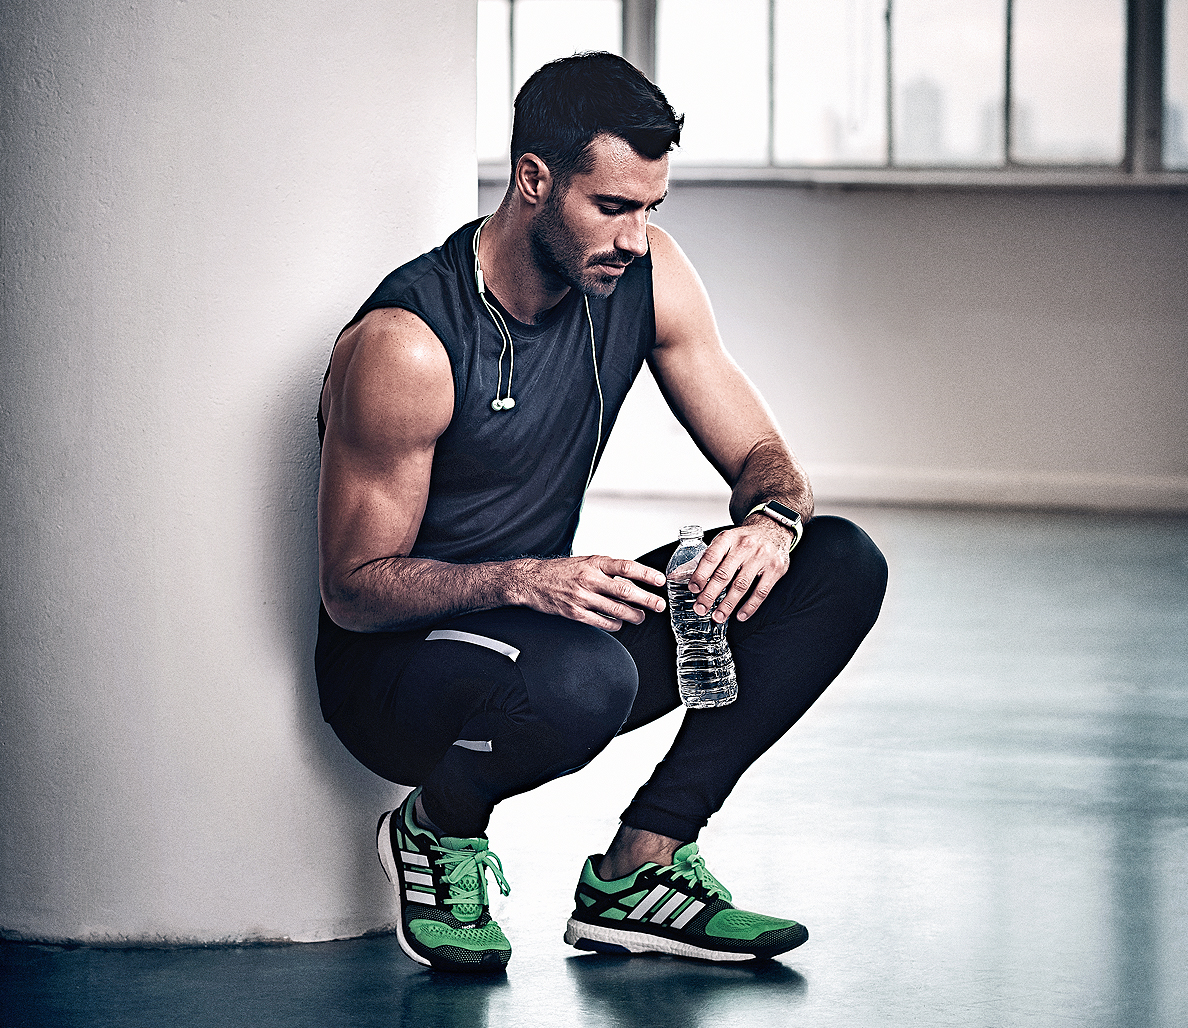 The 6 best ways to recover from your workout